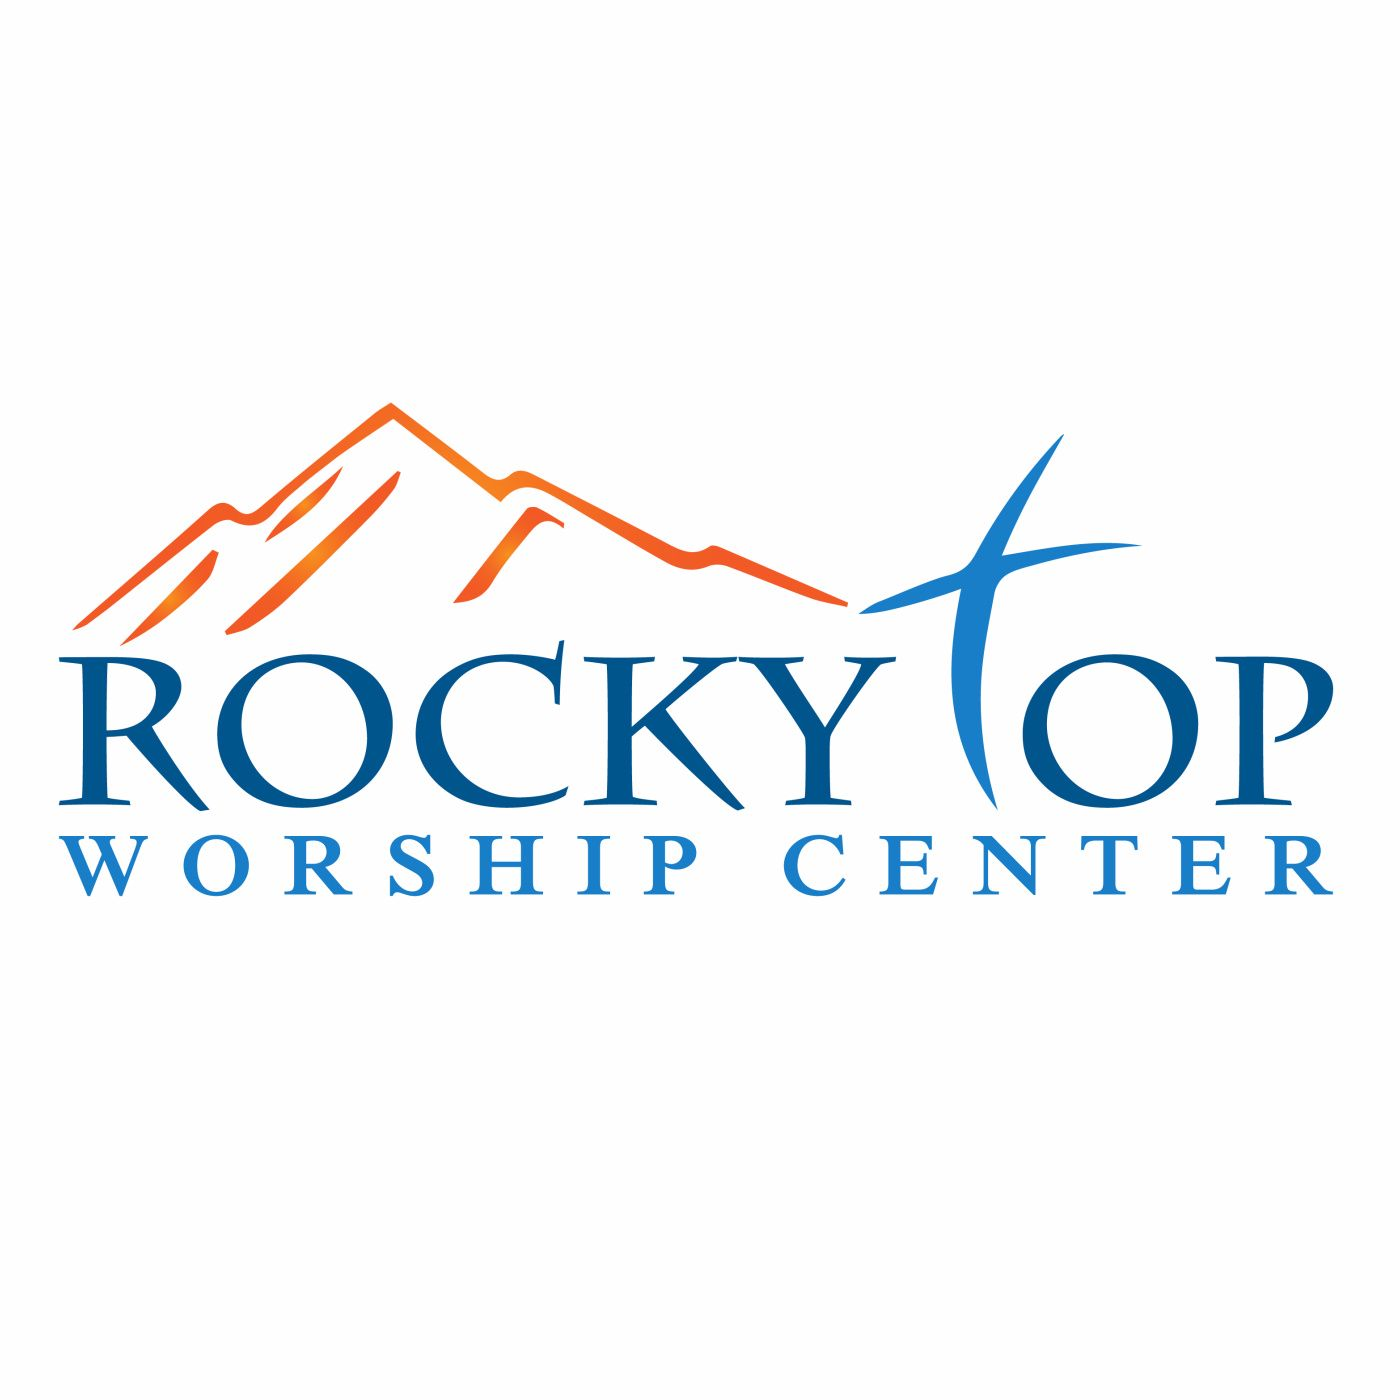 Rocky Top Worship Center